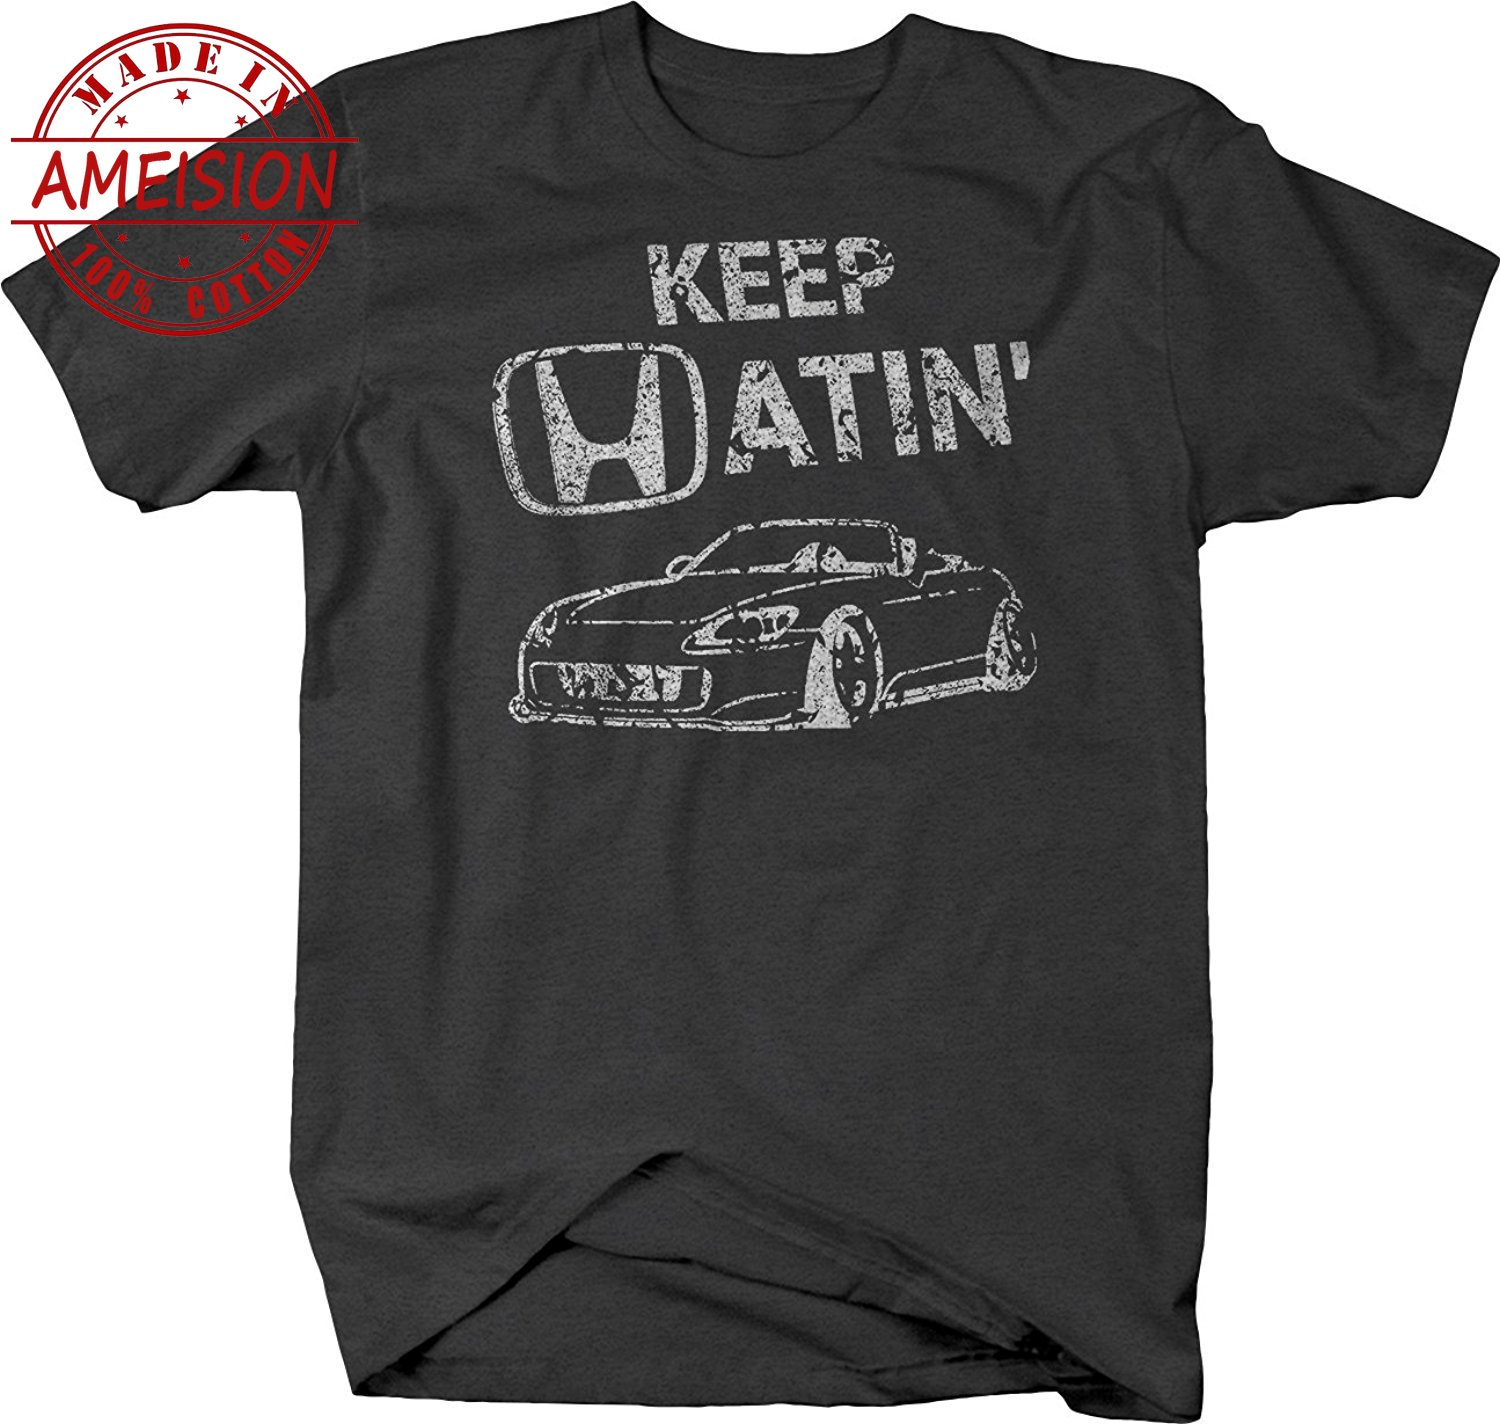 New Summer Hot Sale mens fashion 2019 Keep Hatin S2000 Car Lowered Fast JDM Racings T shirt Tee shirt in T Shirts from Men 39 s Clothing